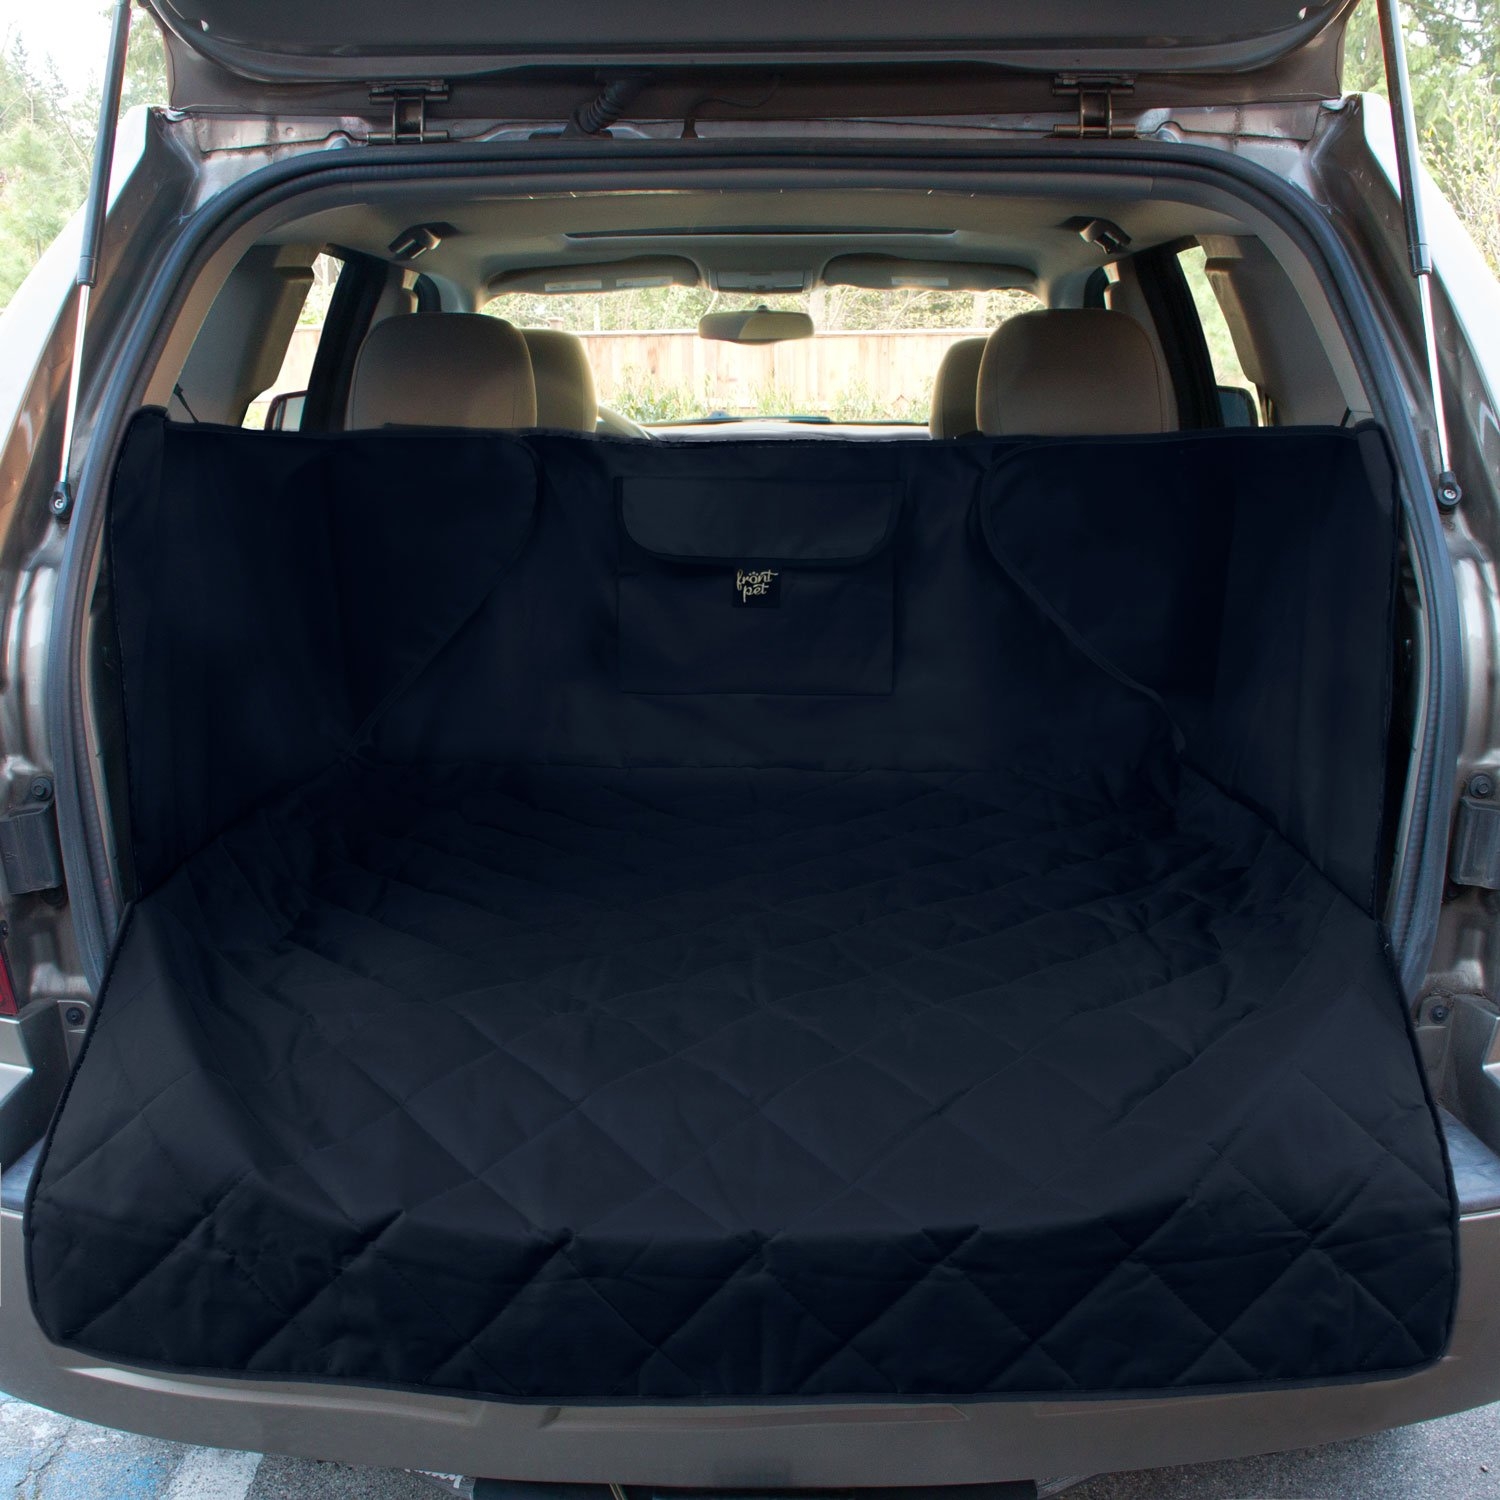 FrontPet Extended Width Quilted Dog Cargo Cover for SUV Universal Fit for Any Animal. Durable Liner Covers and Protects Your Vehicle by FrontPet (Image #1)